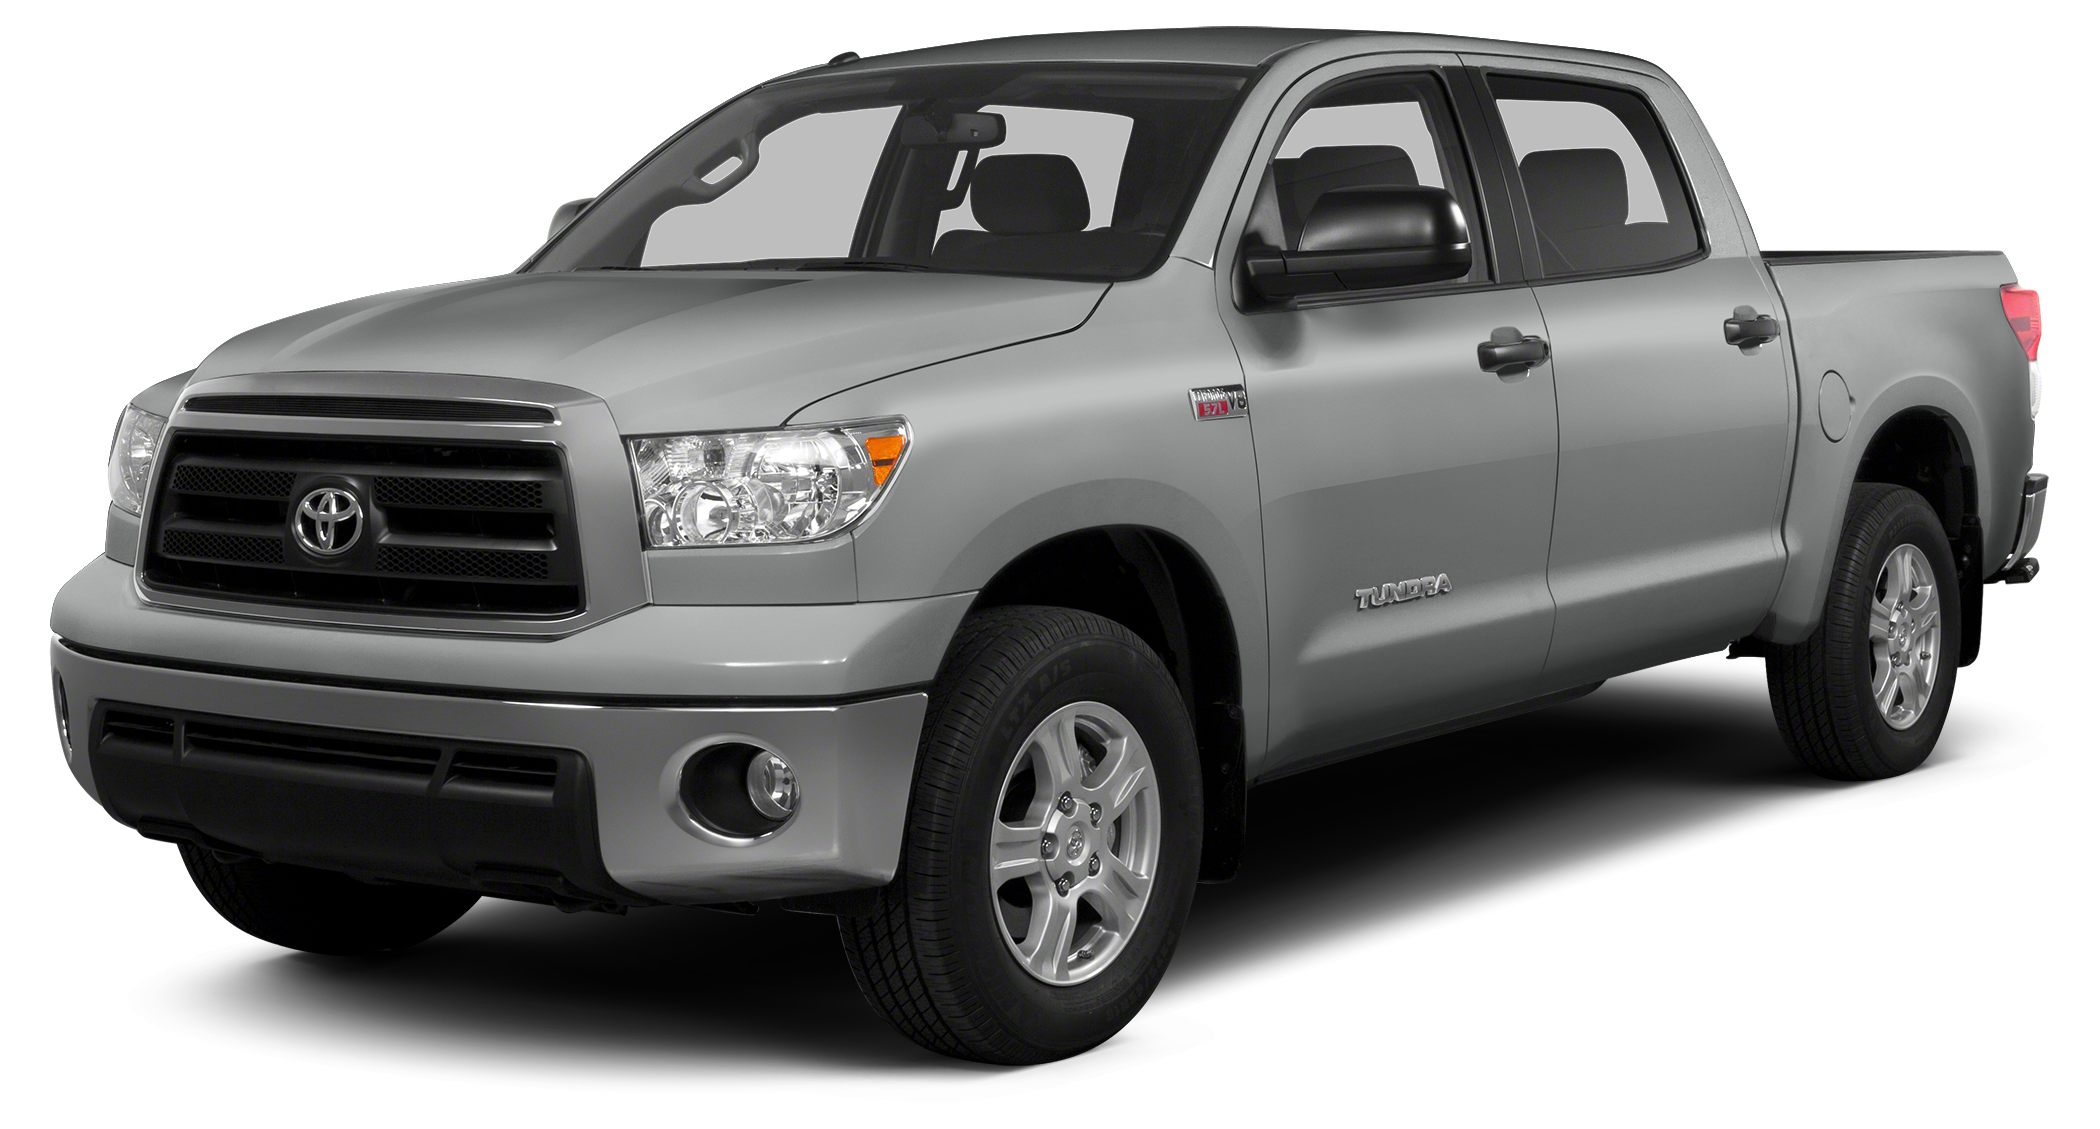 2013 Toyota Tundra Limited Vehicle Detailed Recent Oil Change and Passed Dealer Inspection Look